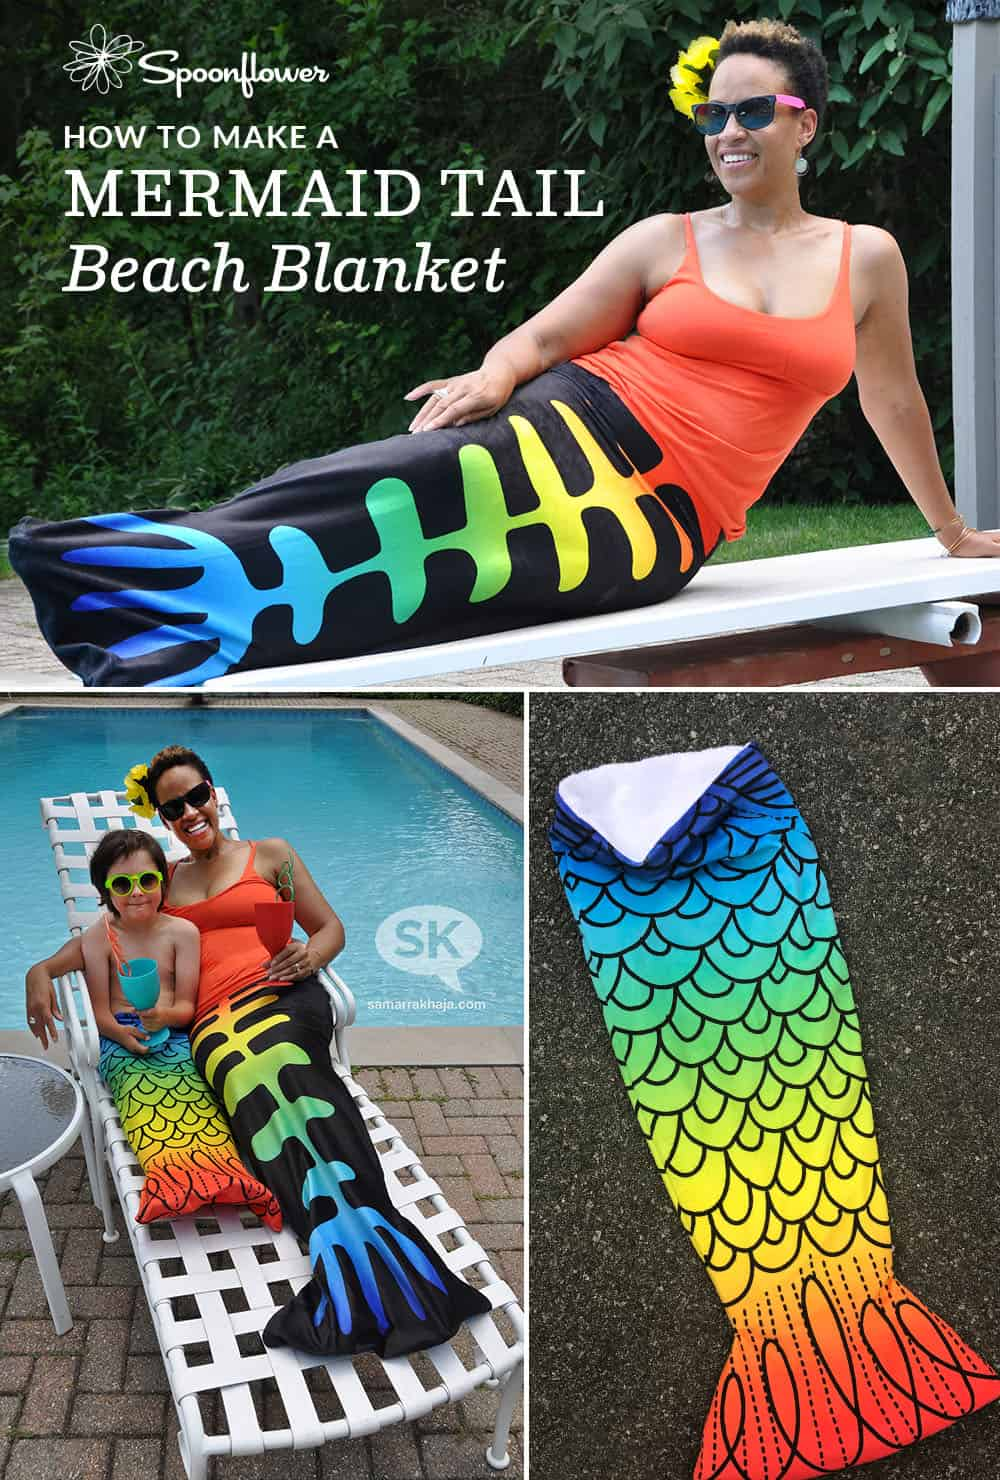 How to make a mermaid tail beach blanket | Spoonflower Blog